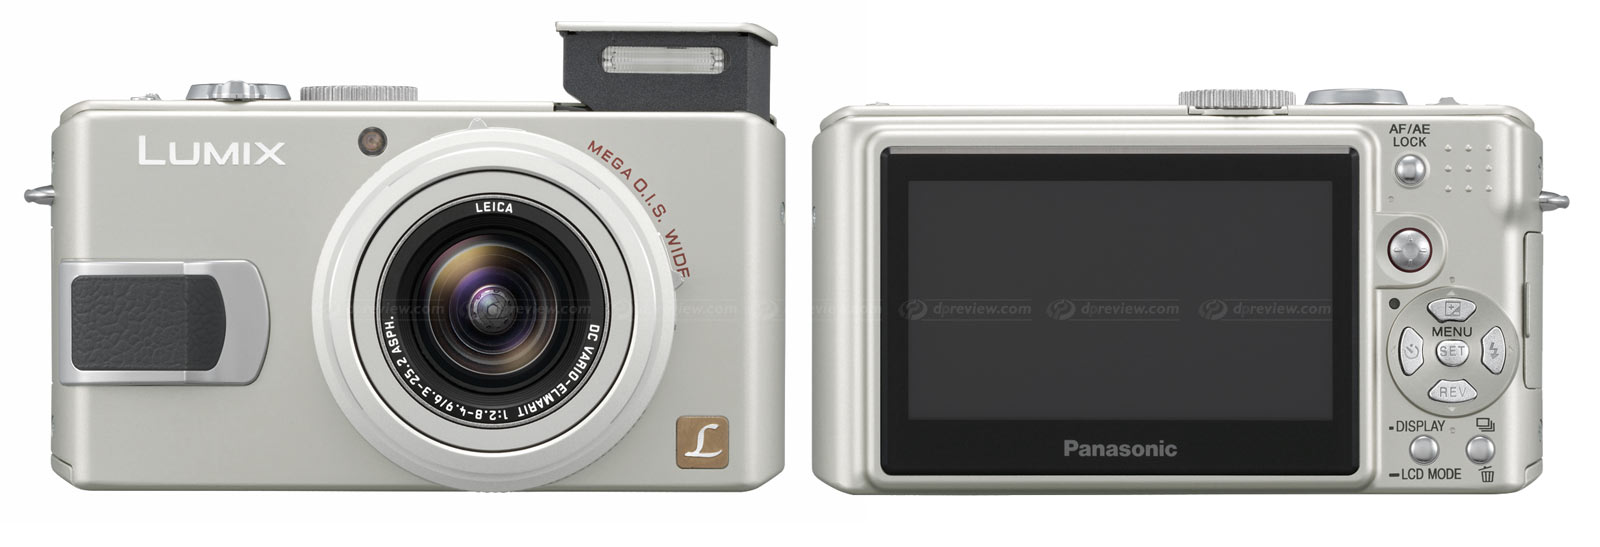 Panasonic Lumix Dmc Lx2 Digital Photography Review 3 Way Switch With Triple Wide Features